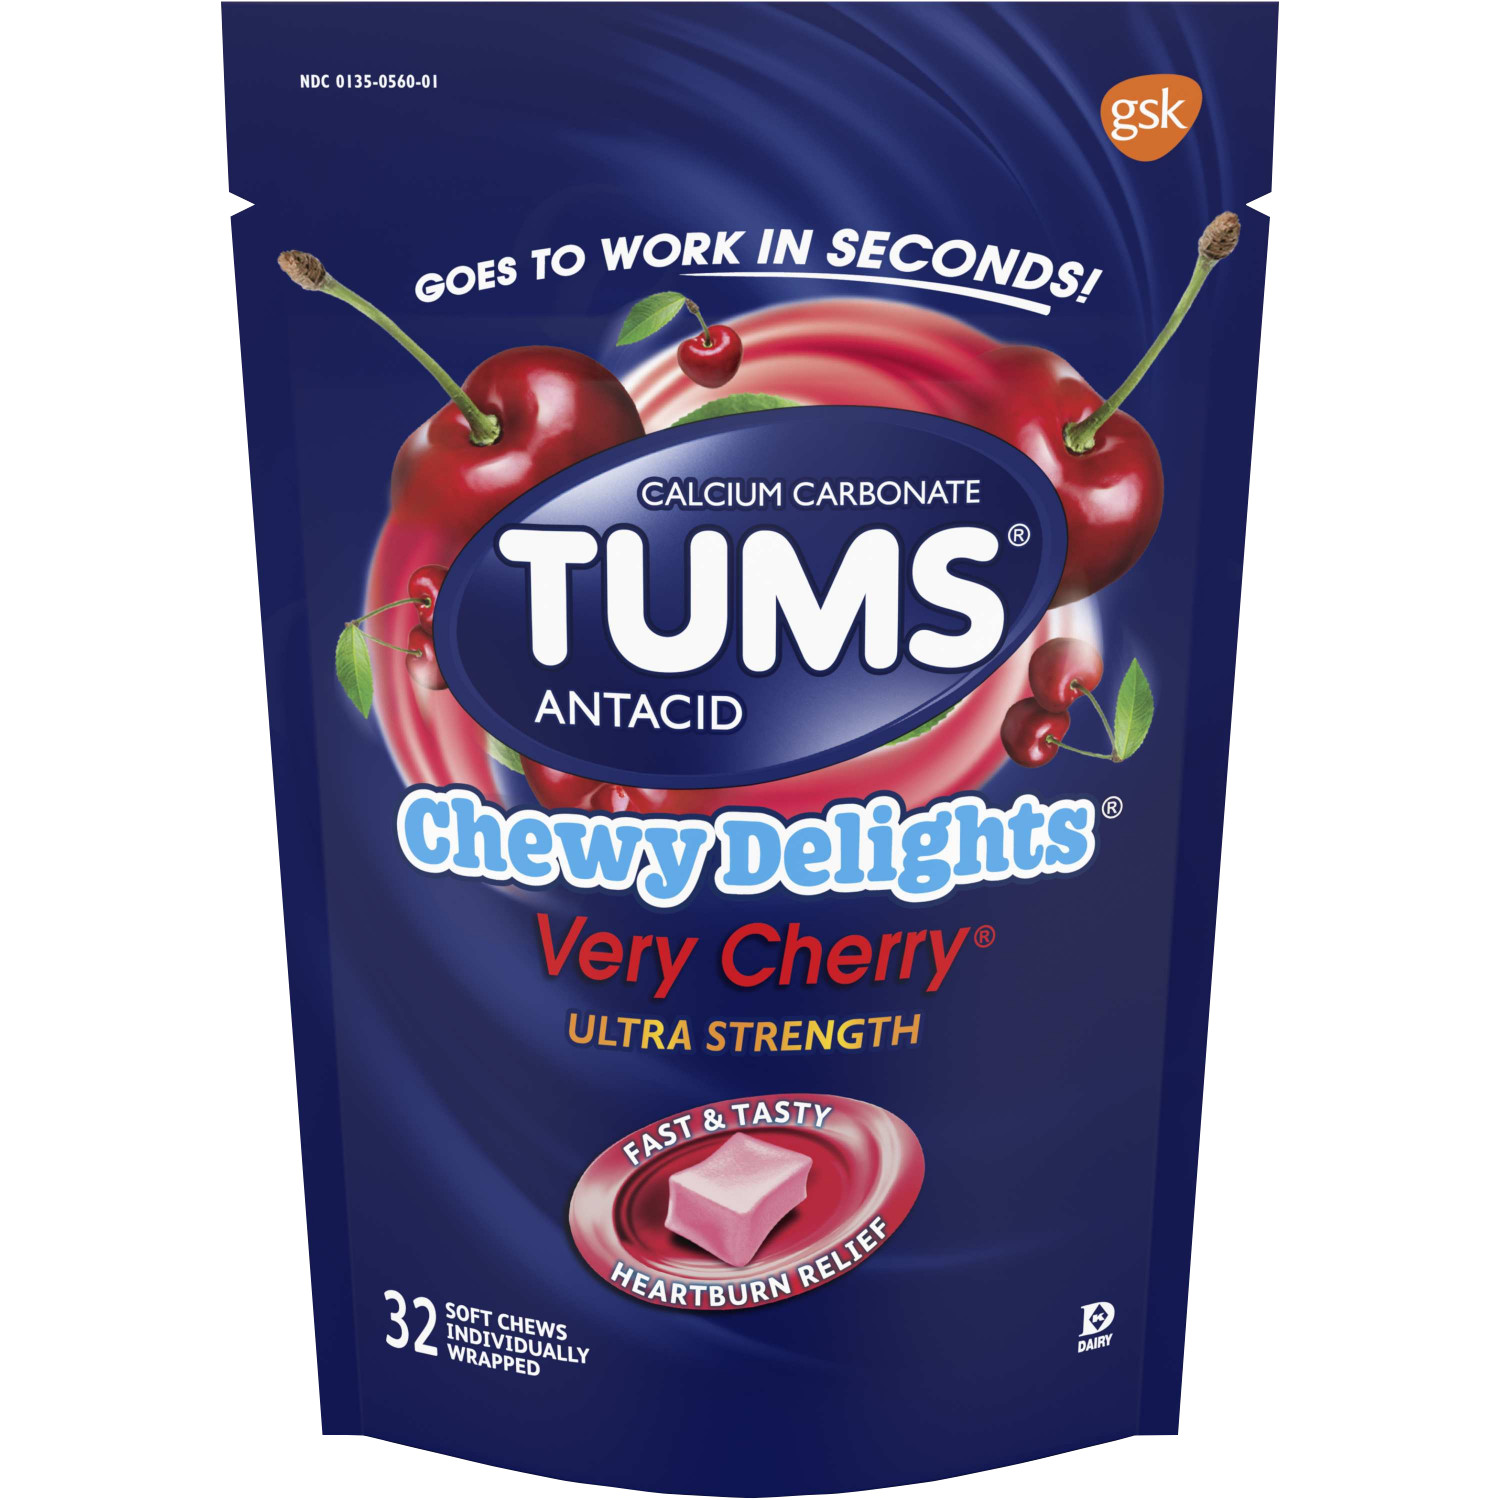 TUMS Antacid, Chewy Delights Very Cherry Ultra Strength Soft Chews for Heartburn Relief, 32 count